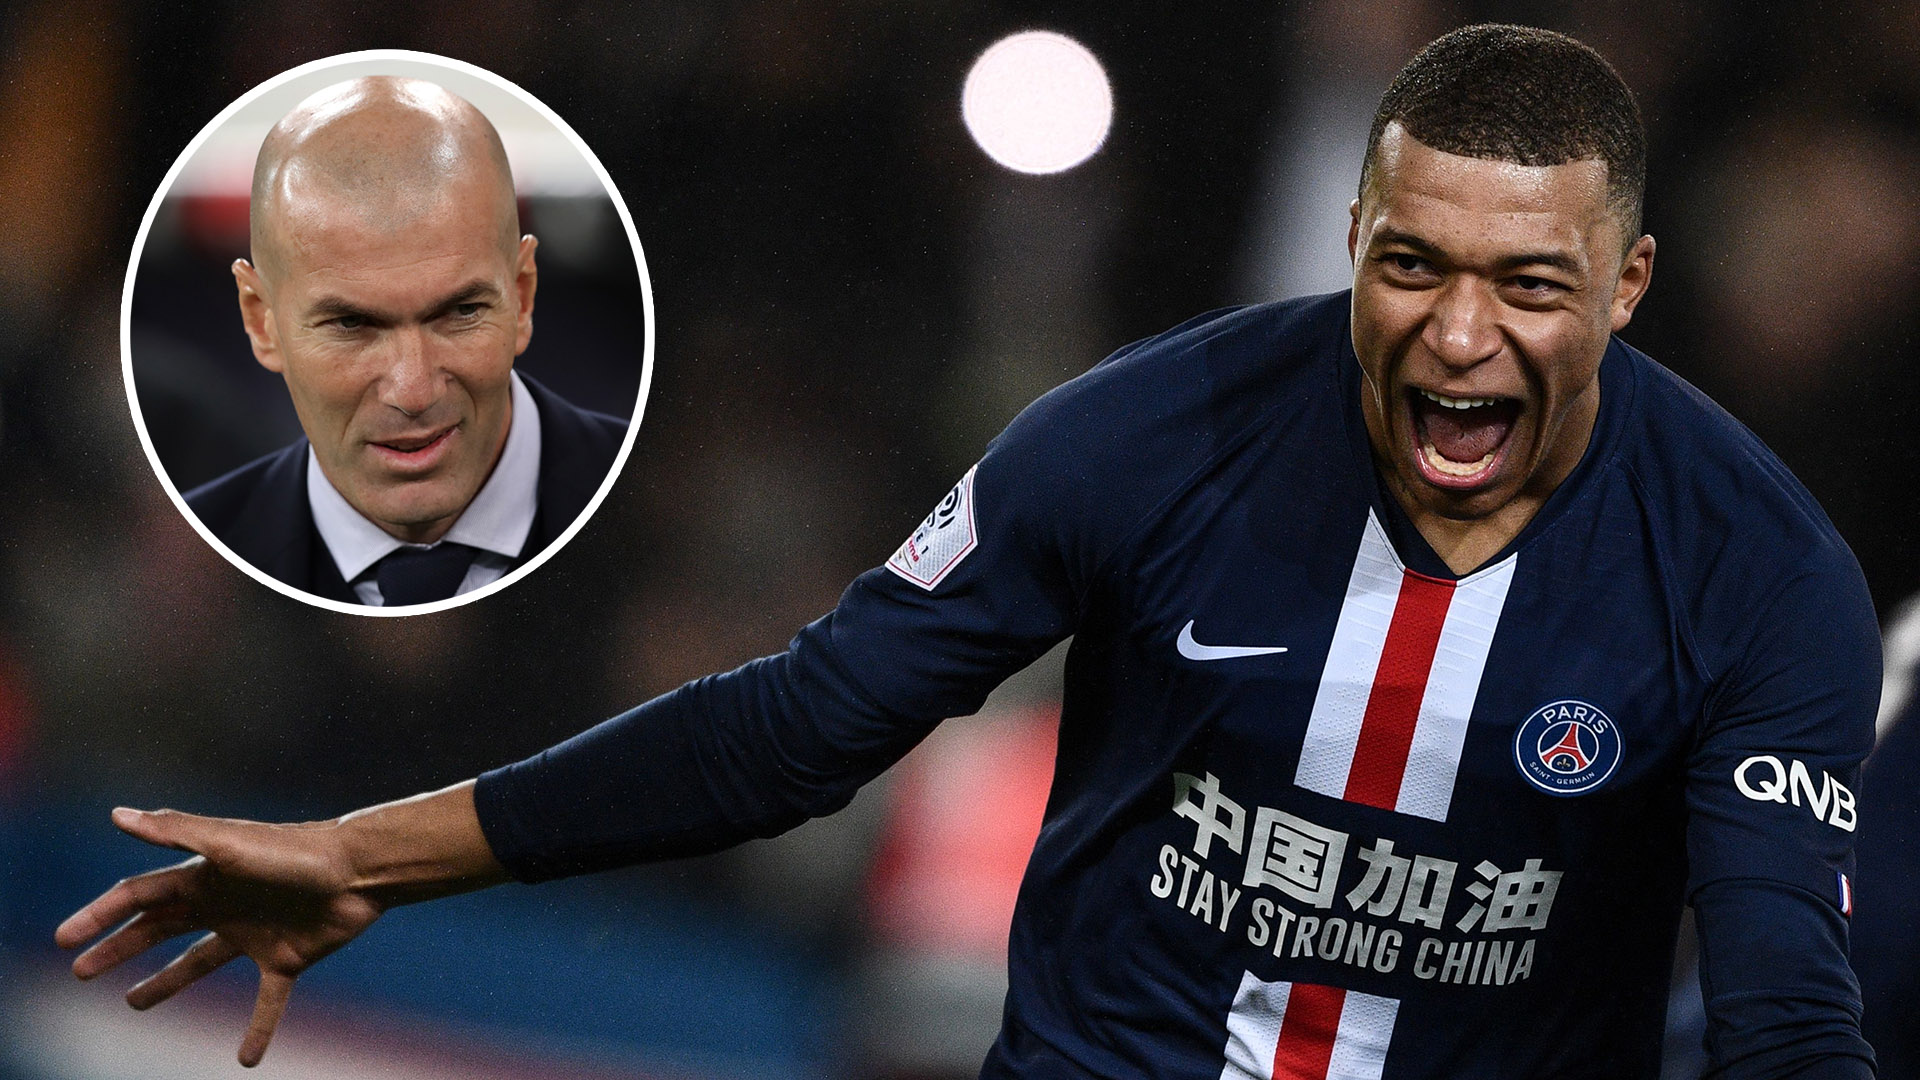 Mbappe's style would suit Real Madrid perfectly - Fabregas